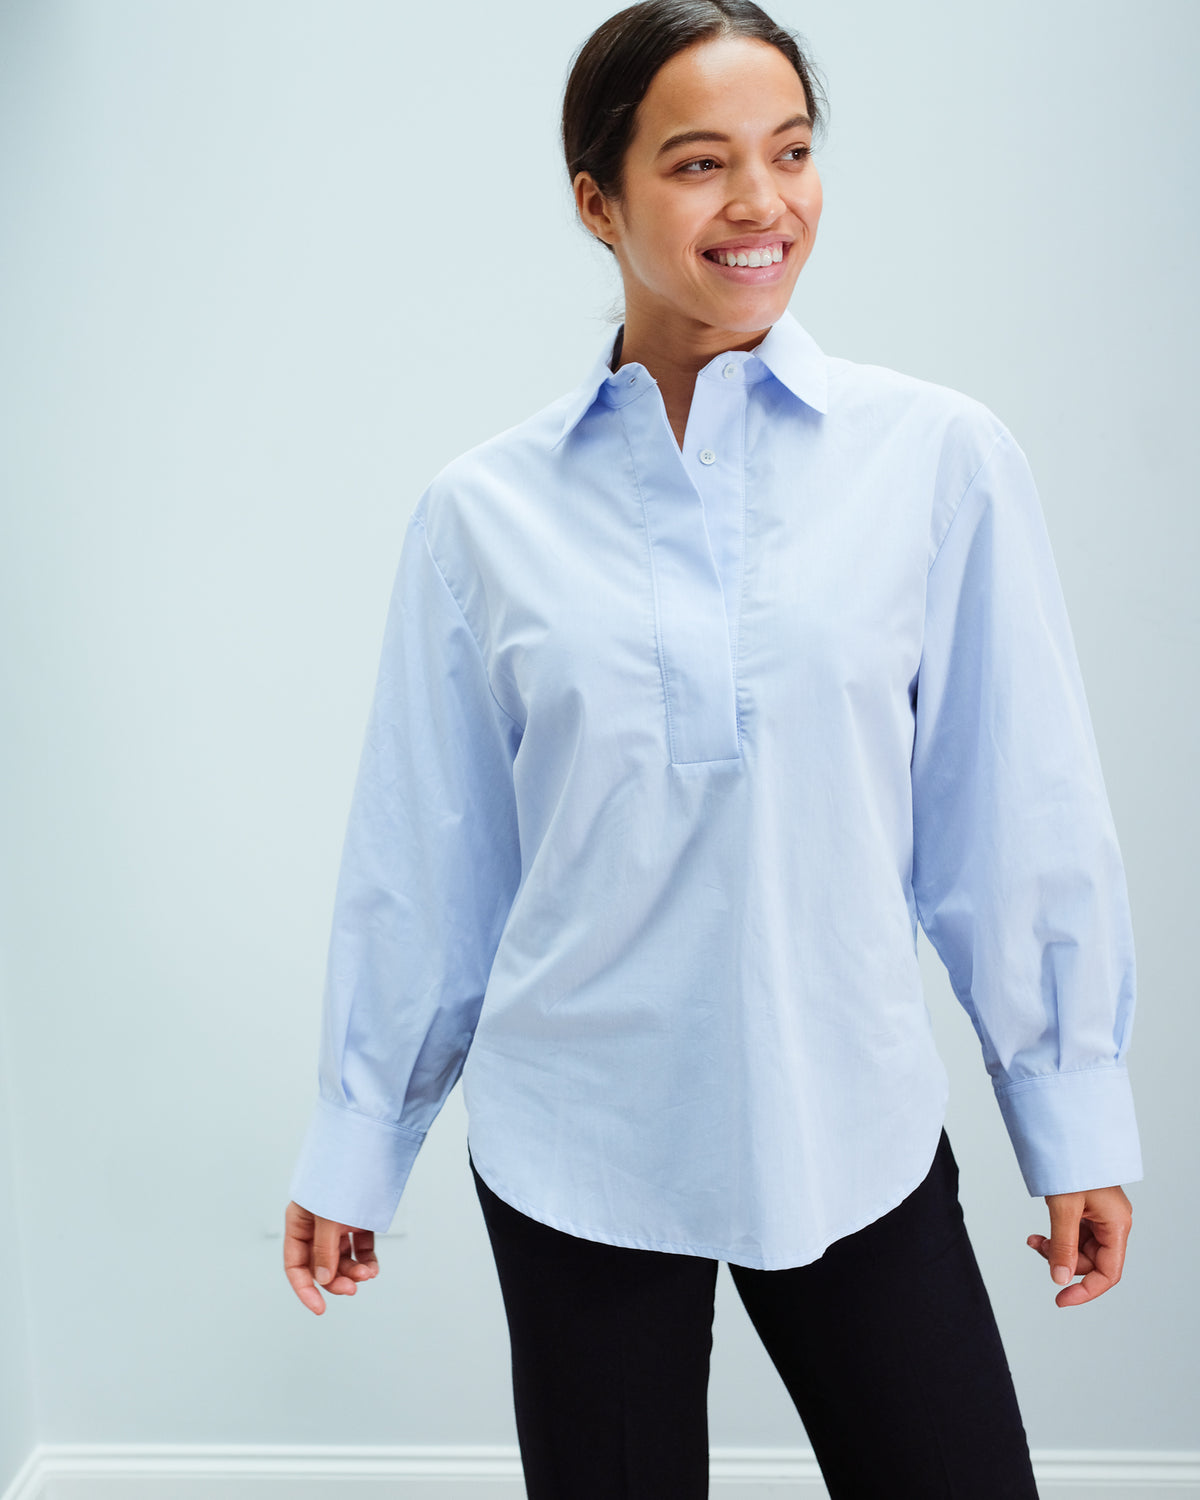 LOR Lotti Shirt in Sky Blue